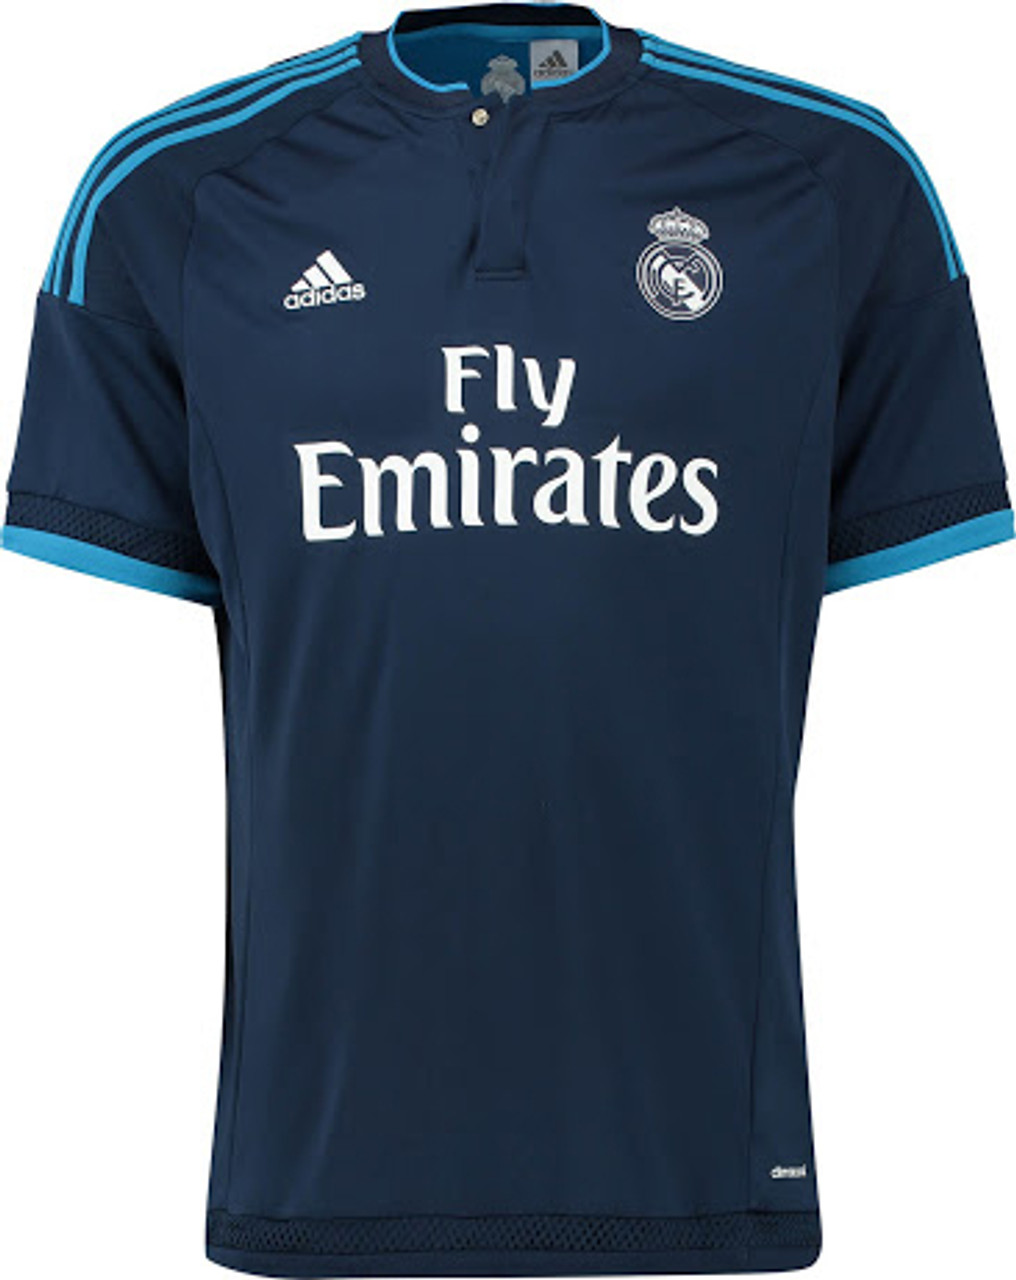 best website cac5a 83ca2 ADIDAS REAL MADRID 2016 AWAY 3rd JERSEY NAVY